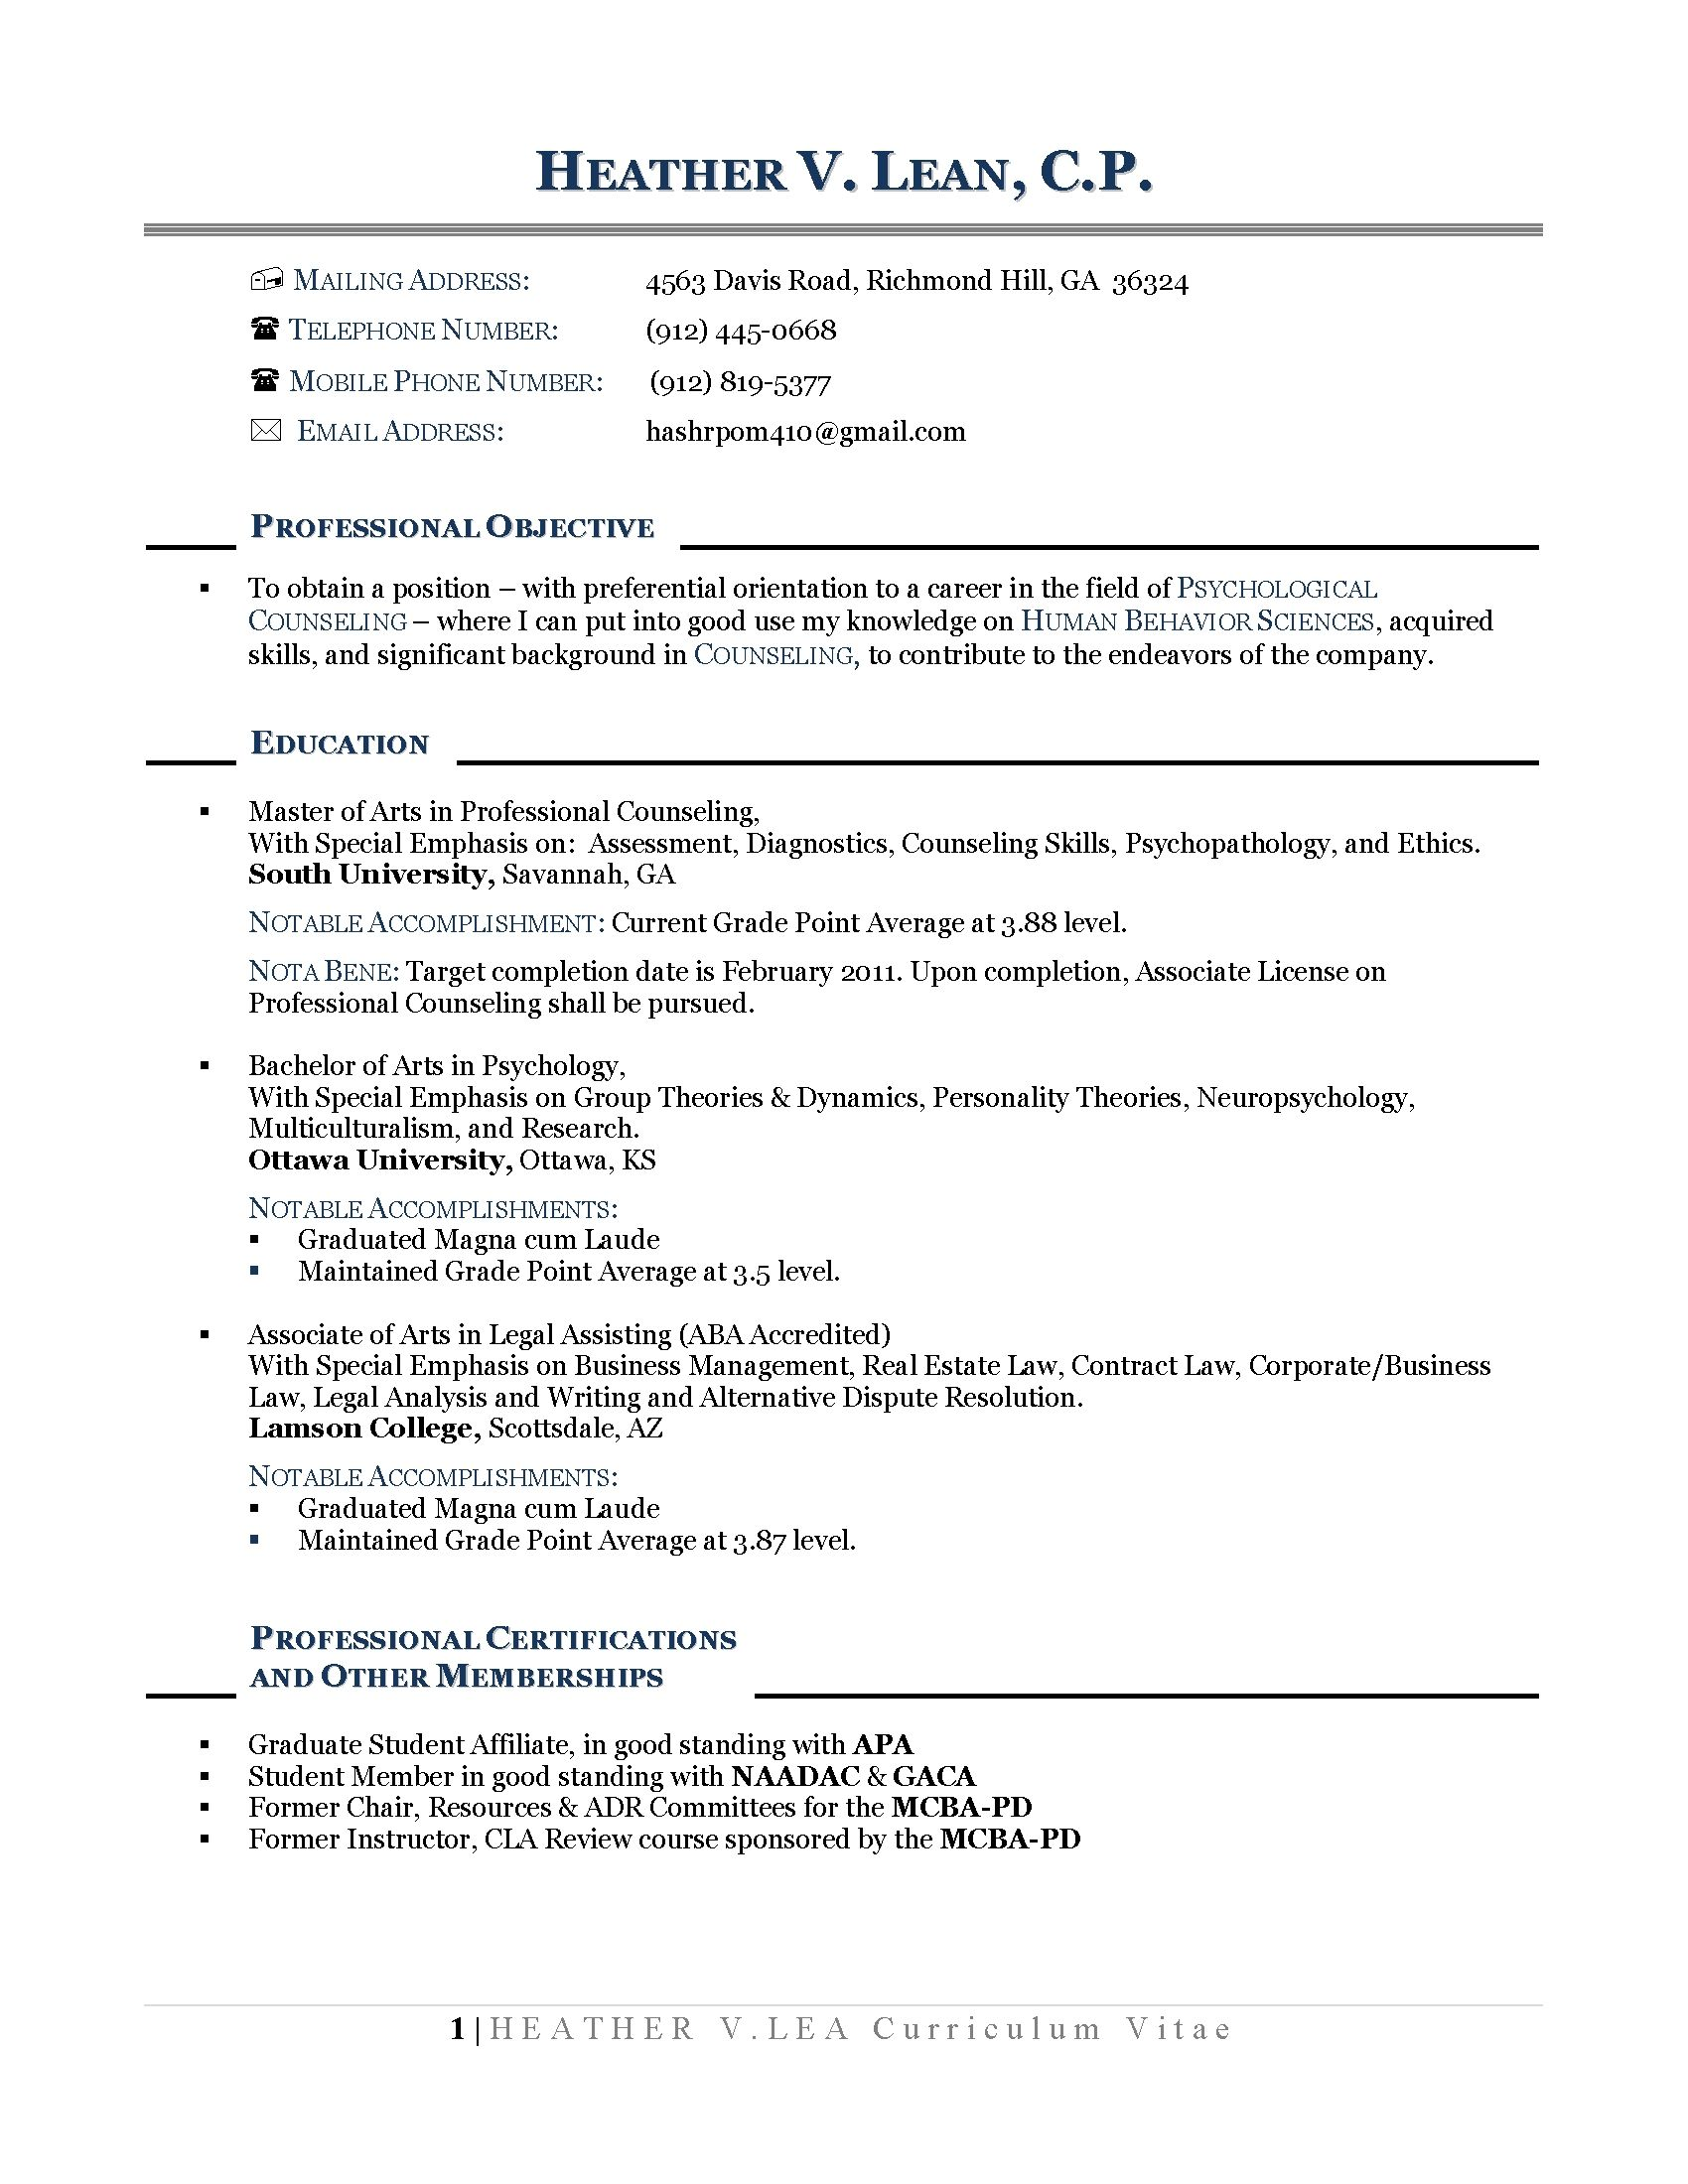 Associate Attorney Resume Captivating Resume Examples Career Change  Pinterest  Resume Examples And Change